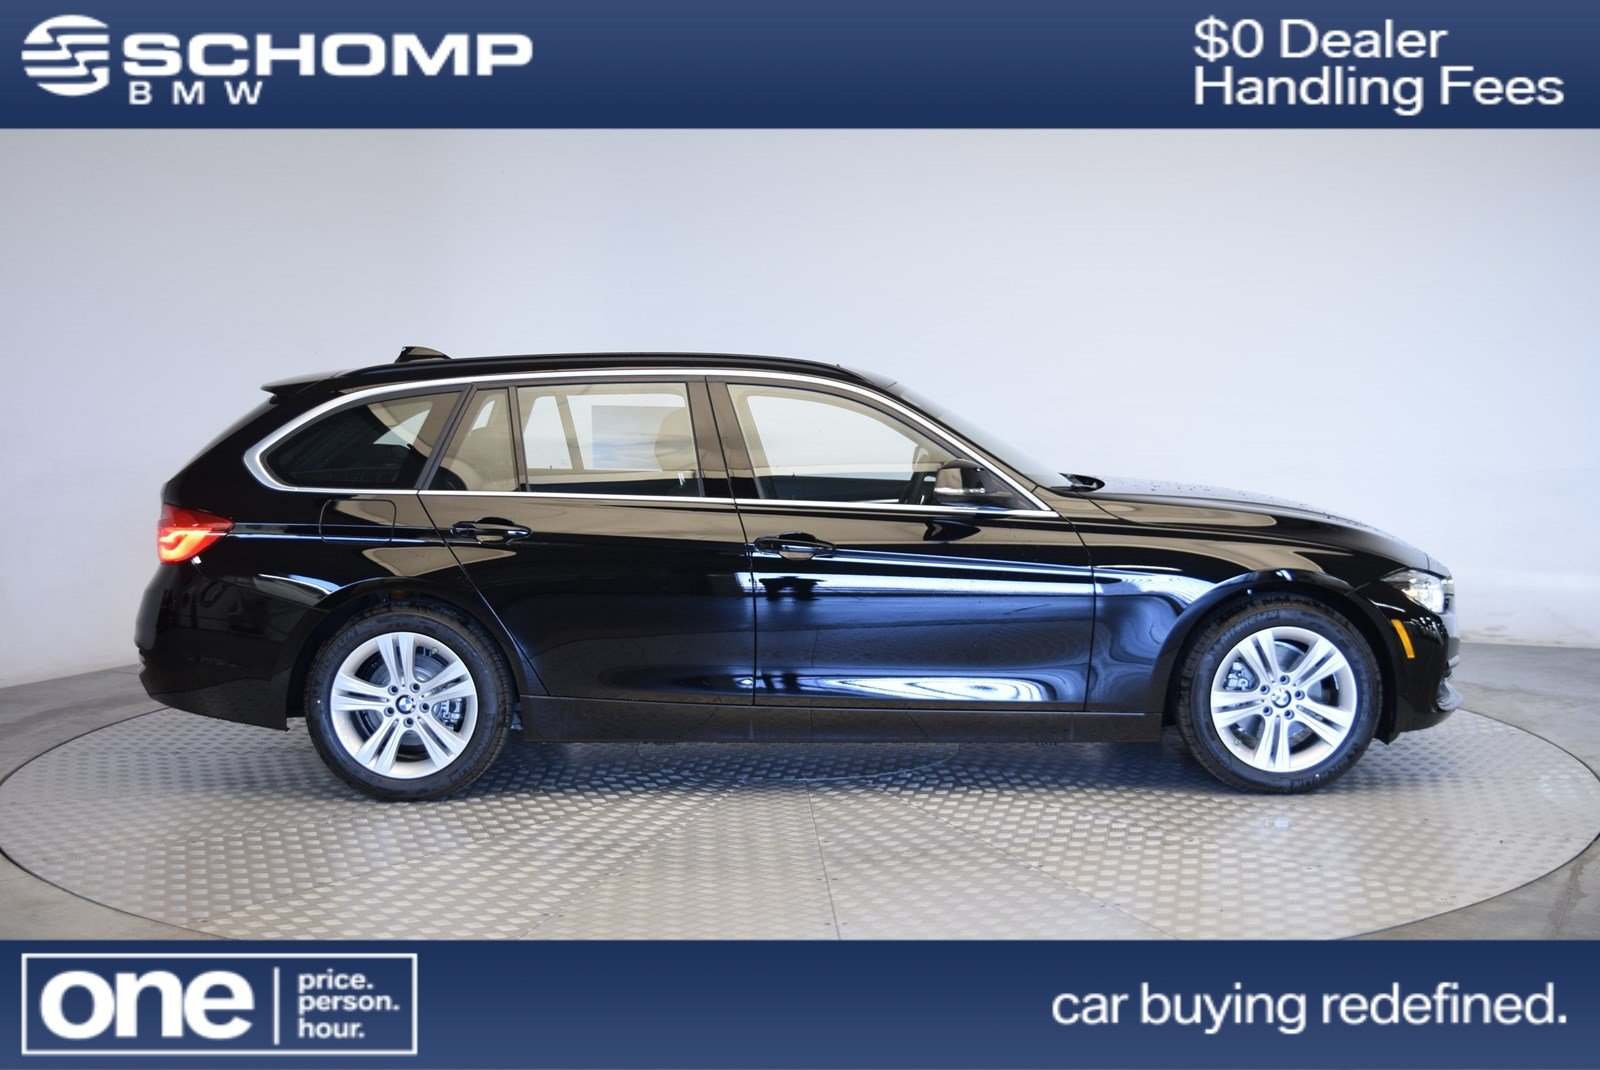 New BMW Series D XDrive Sports Wagon Station Wagon In - Bmw 328d xdrive wagon